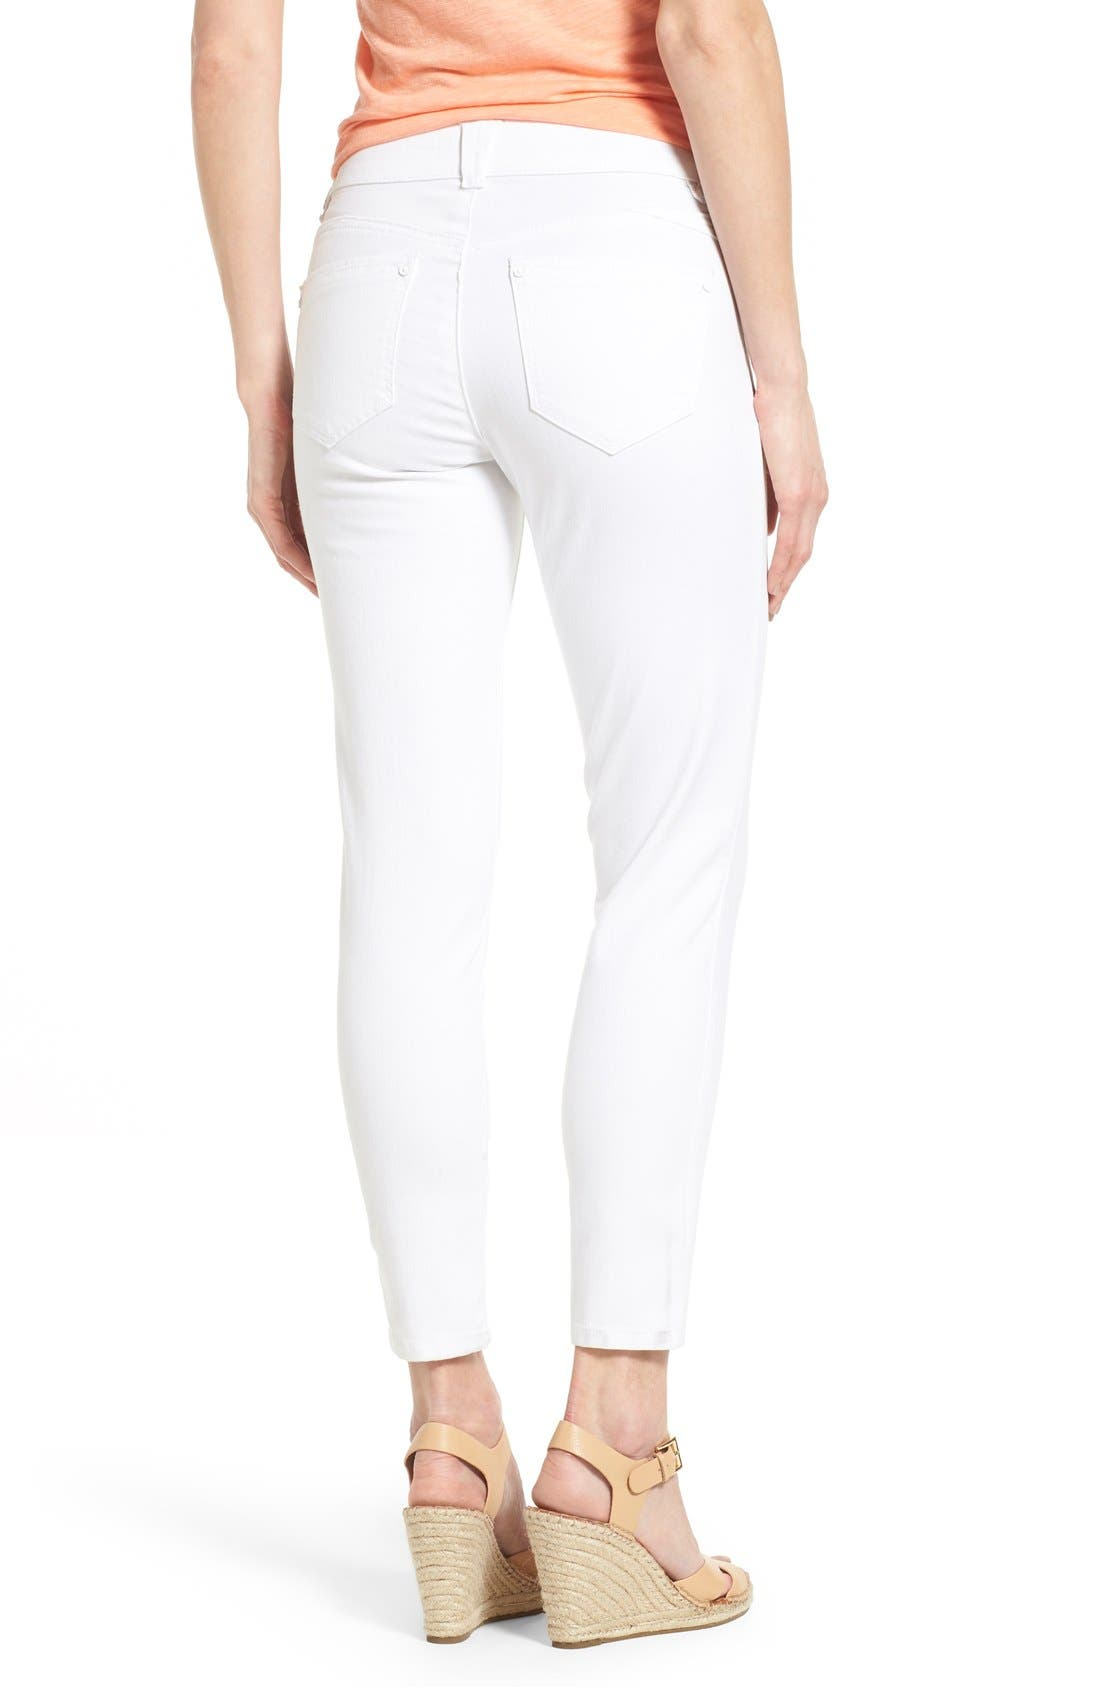 Alternate Image 3  - Wit & Wisdom Ab-solution Stretch Ankle Skinny Jeans (Optic White) (Nordstrom Exclusive)